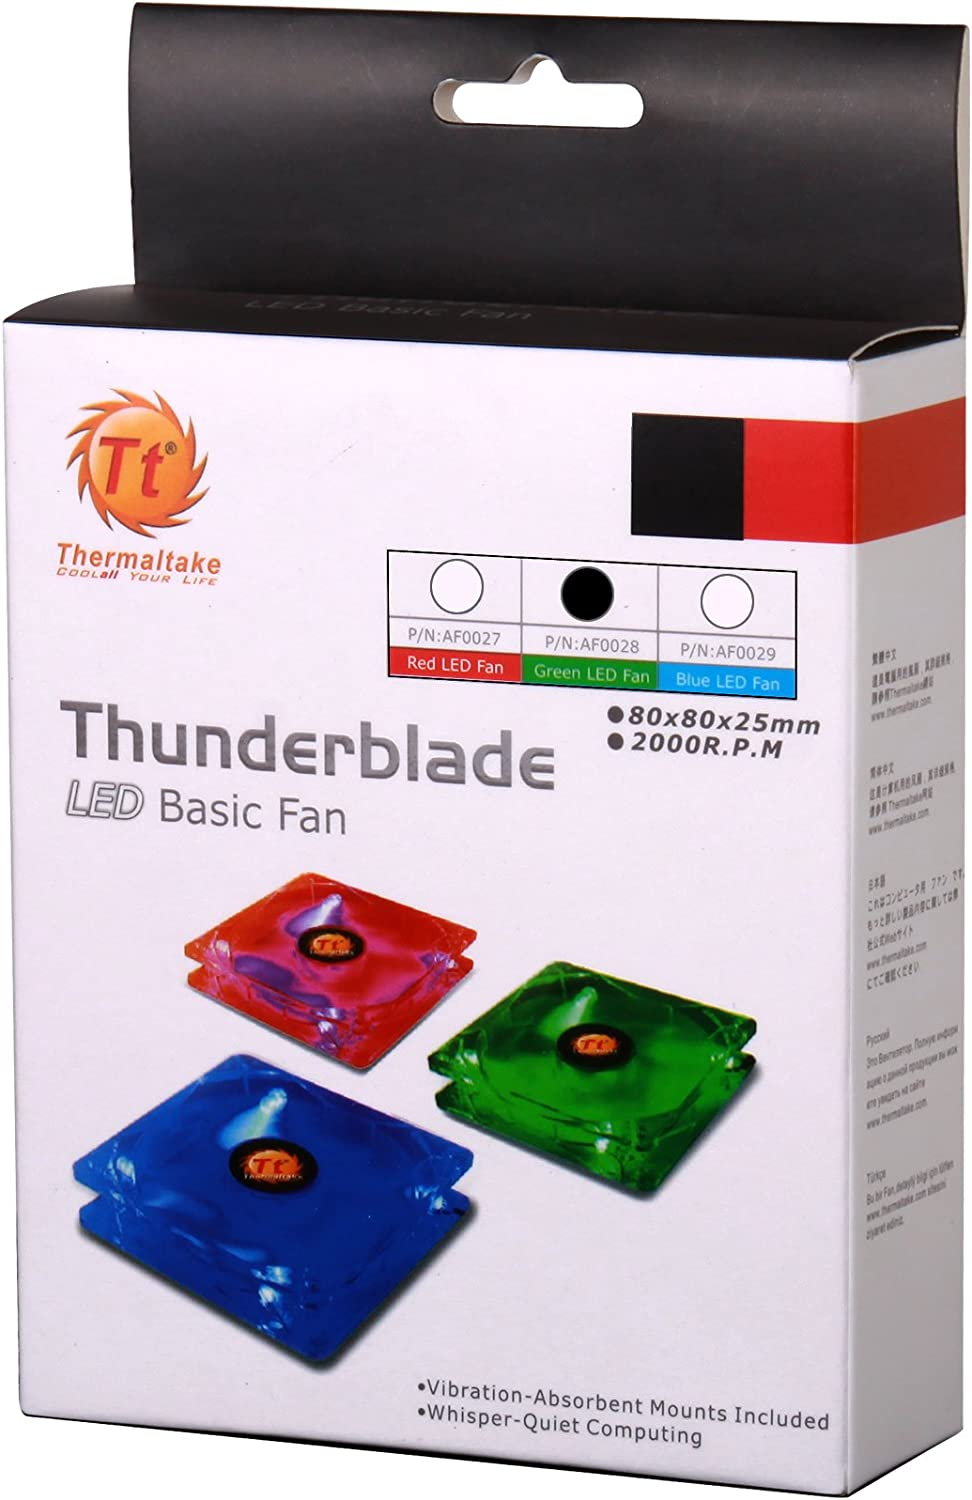 Thermaltake Thunderblade 80 mm 4 Led Case Fan 3 and 4 Pin 21 dBA AF0028 Green